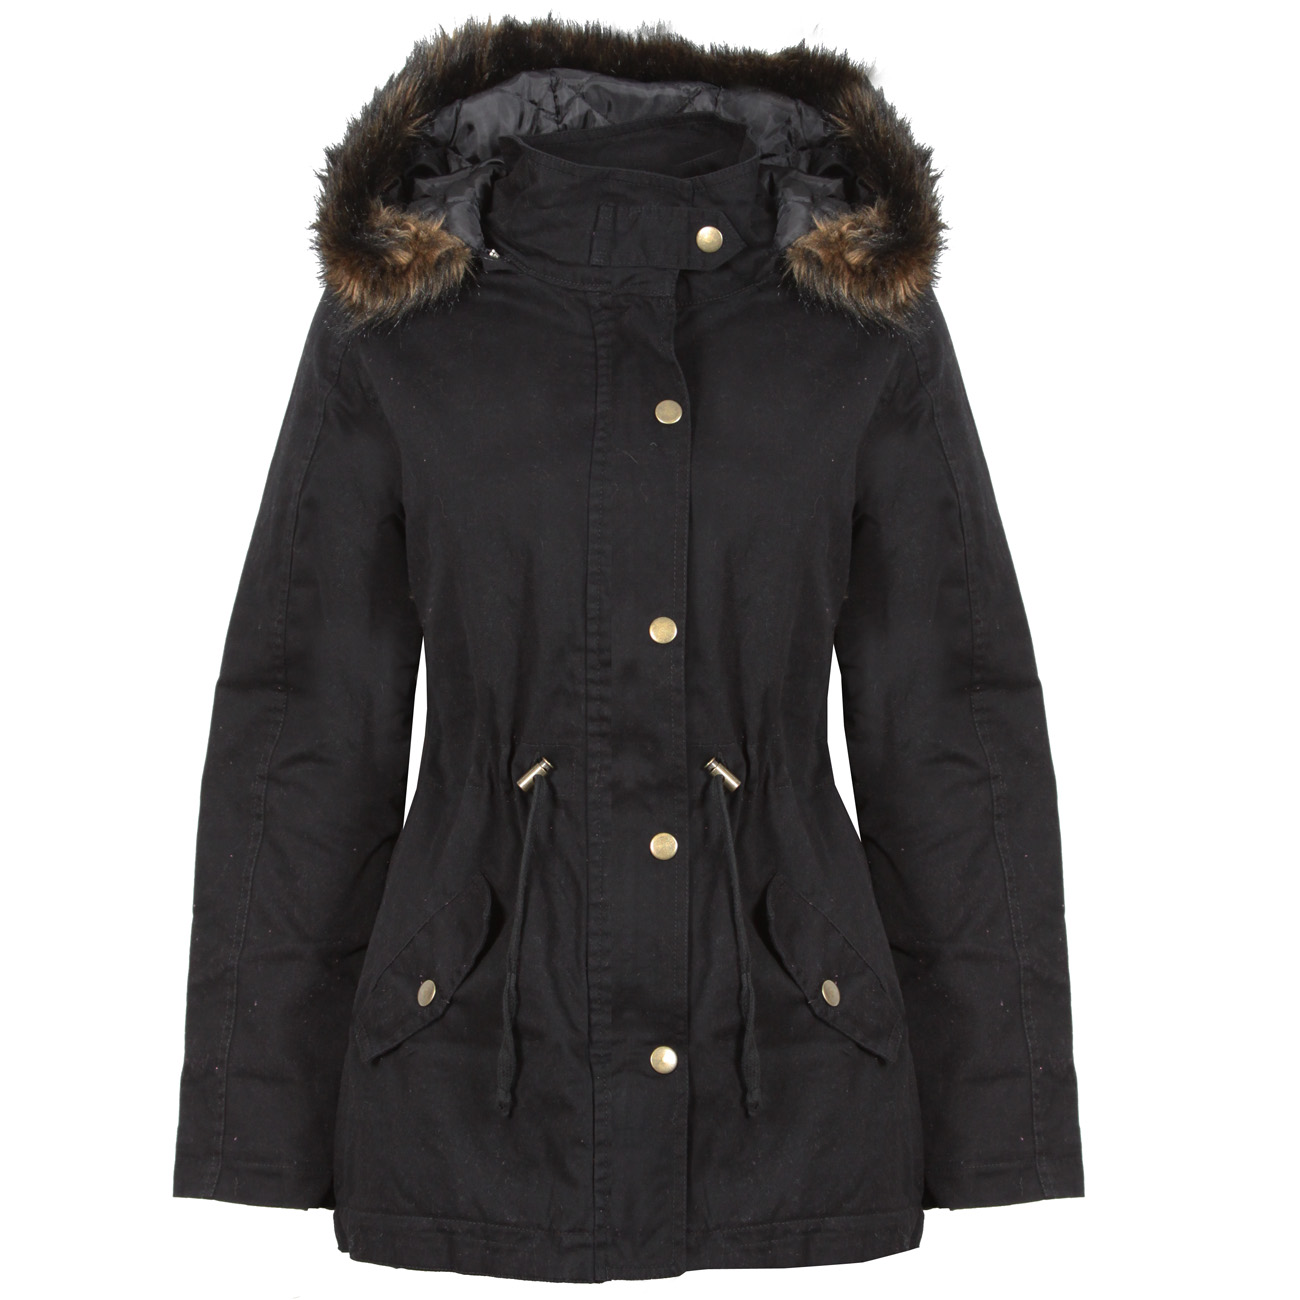 Discover the range of women's parkas from ASOS. Shop from a variety of parkas jackets and coats in a variety of colours and lengths today. your browser is not supported. The North Face Womens Metropolis Parka II in Black. £ adidas Originals Short Down Filled Jacket In Black. £ Bershka padded longline coat. £